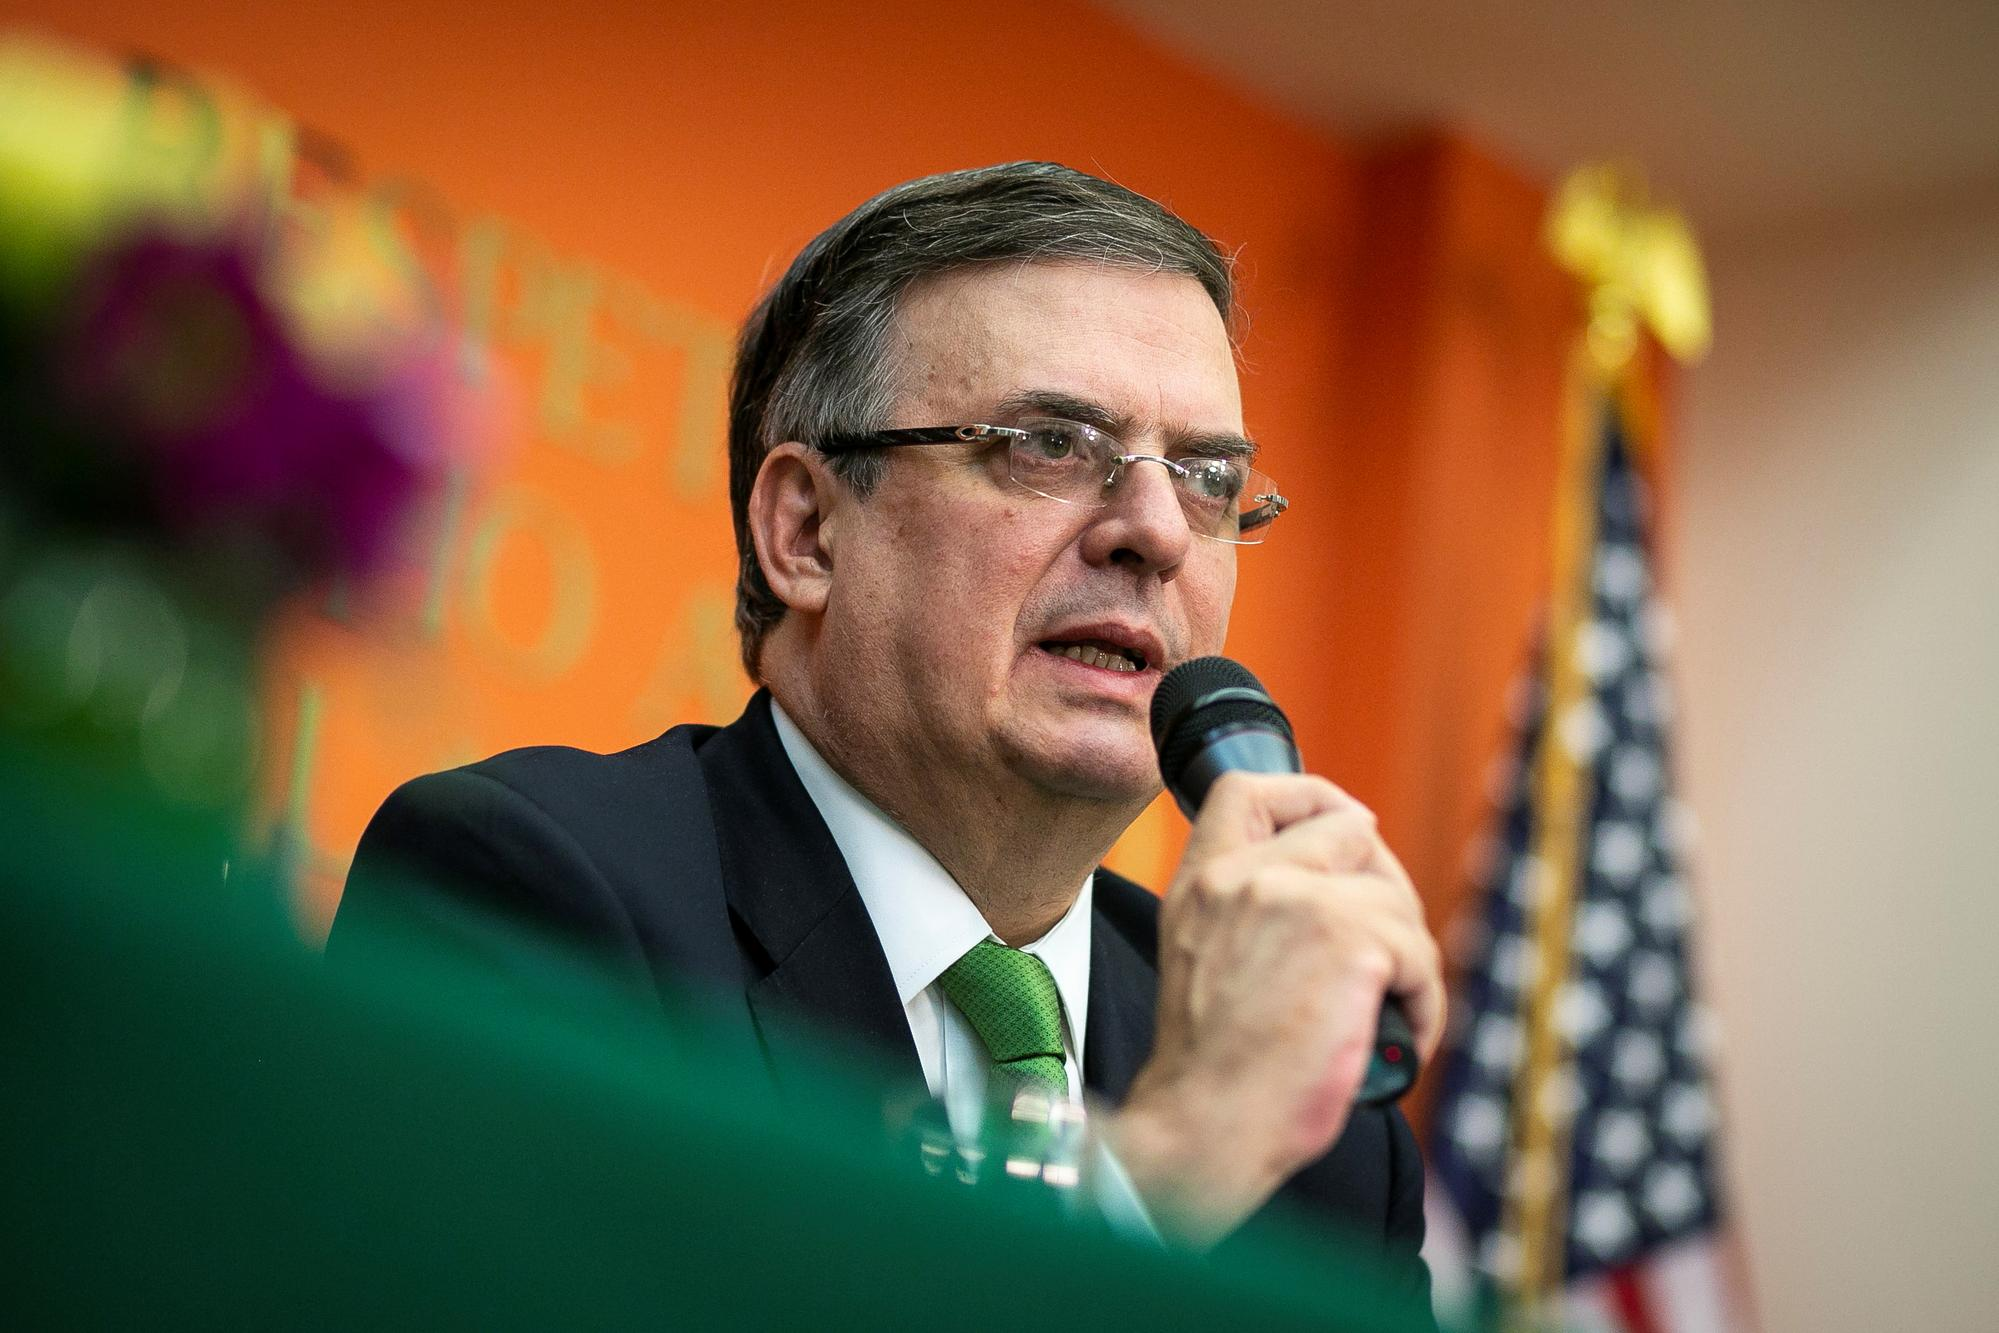 Mexico's Ebrard says talks with U.S. focused on migration flows, not tariffs